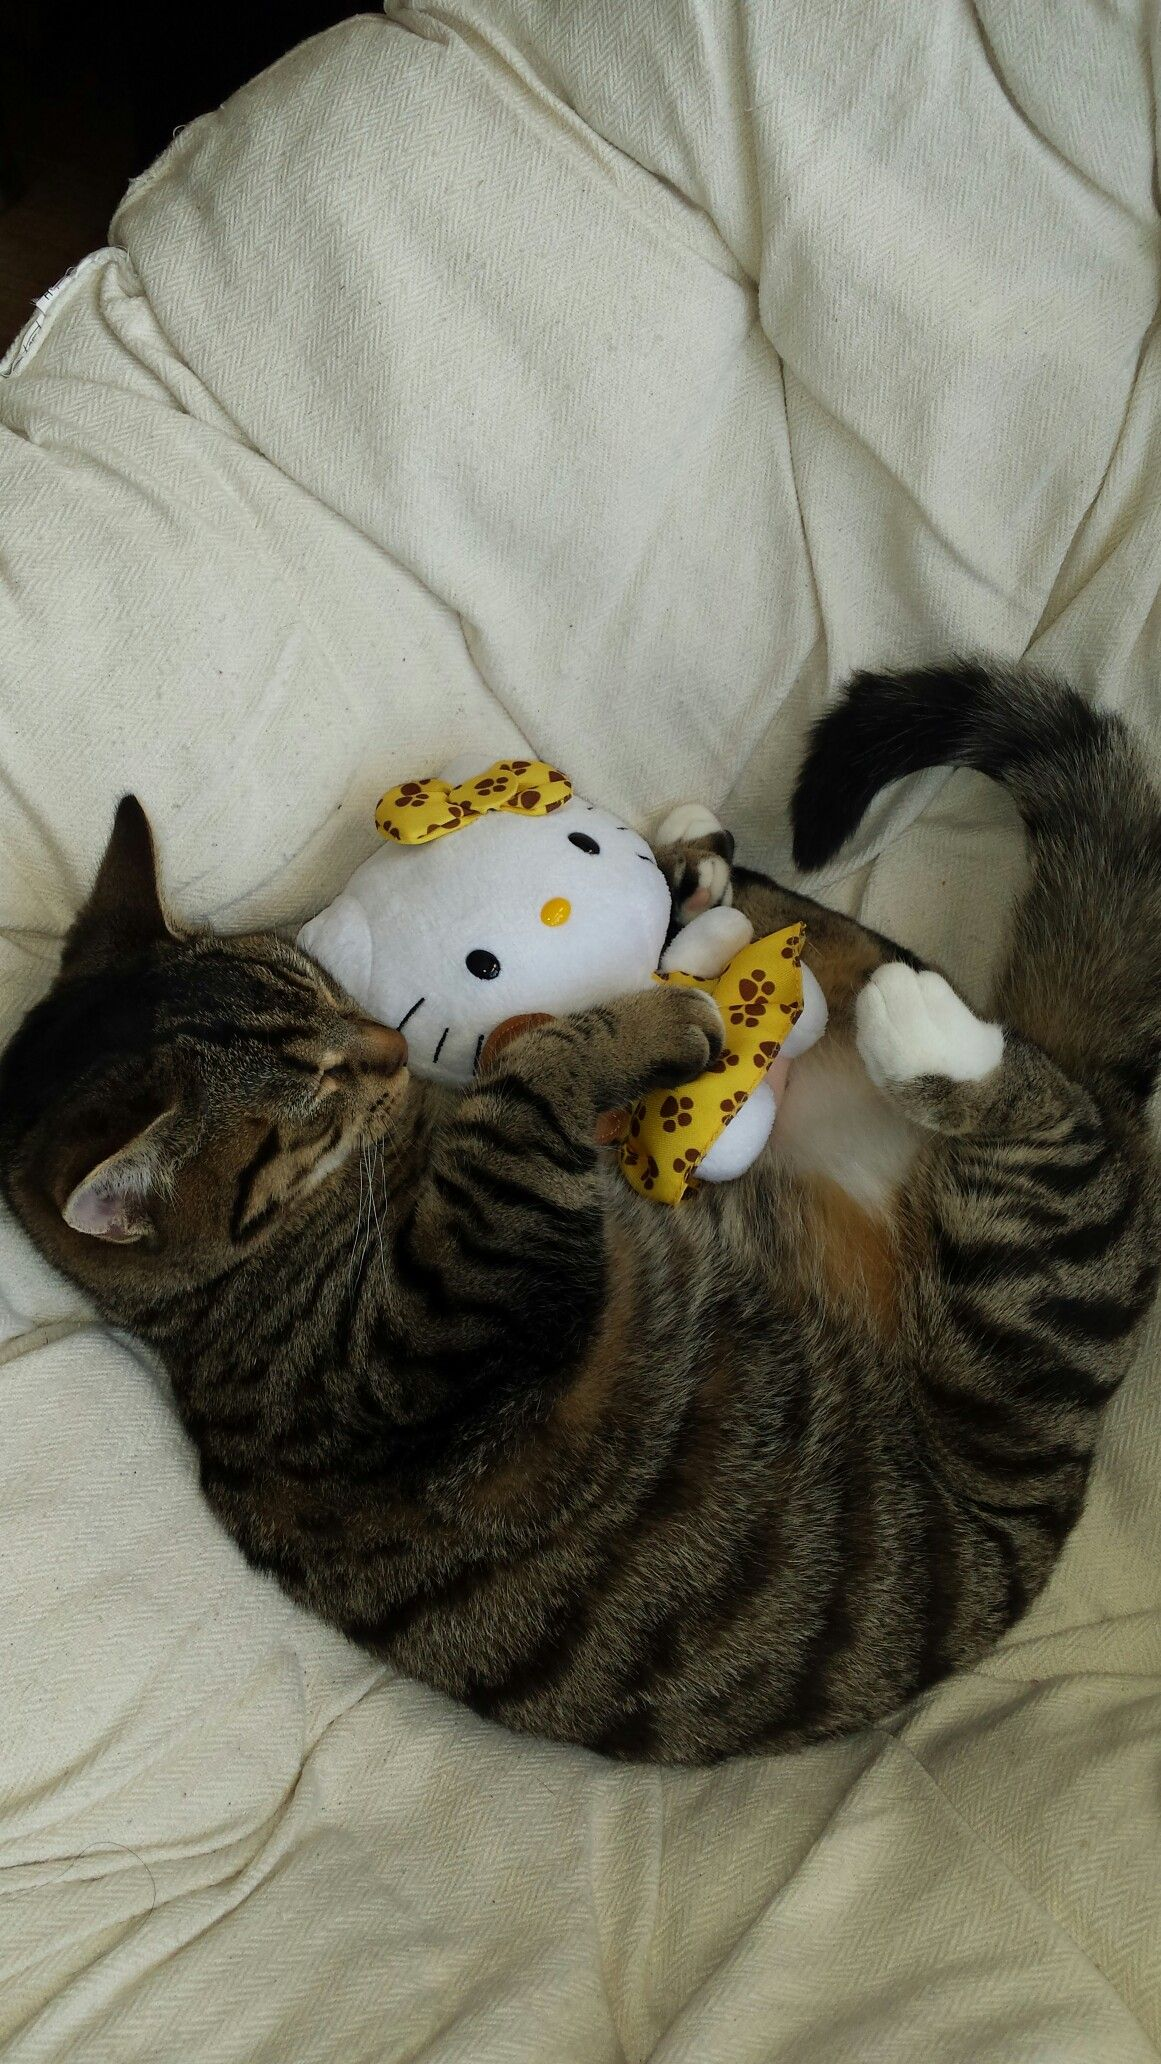 Kitten Mickey playing with my Hello Kitty